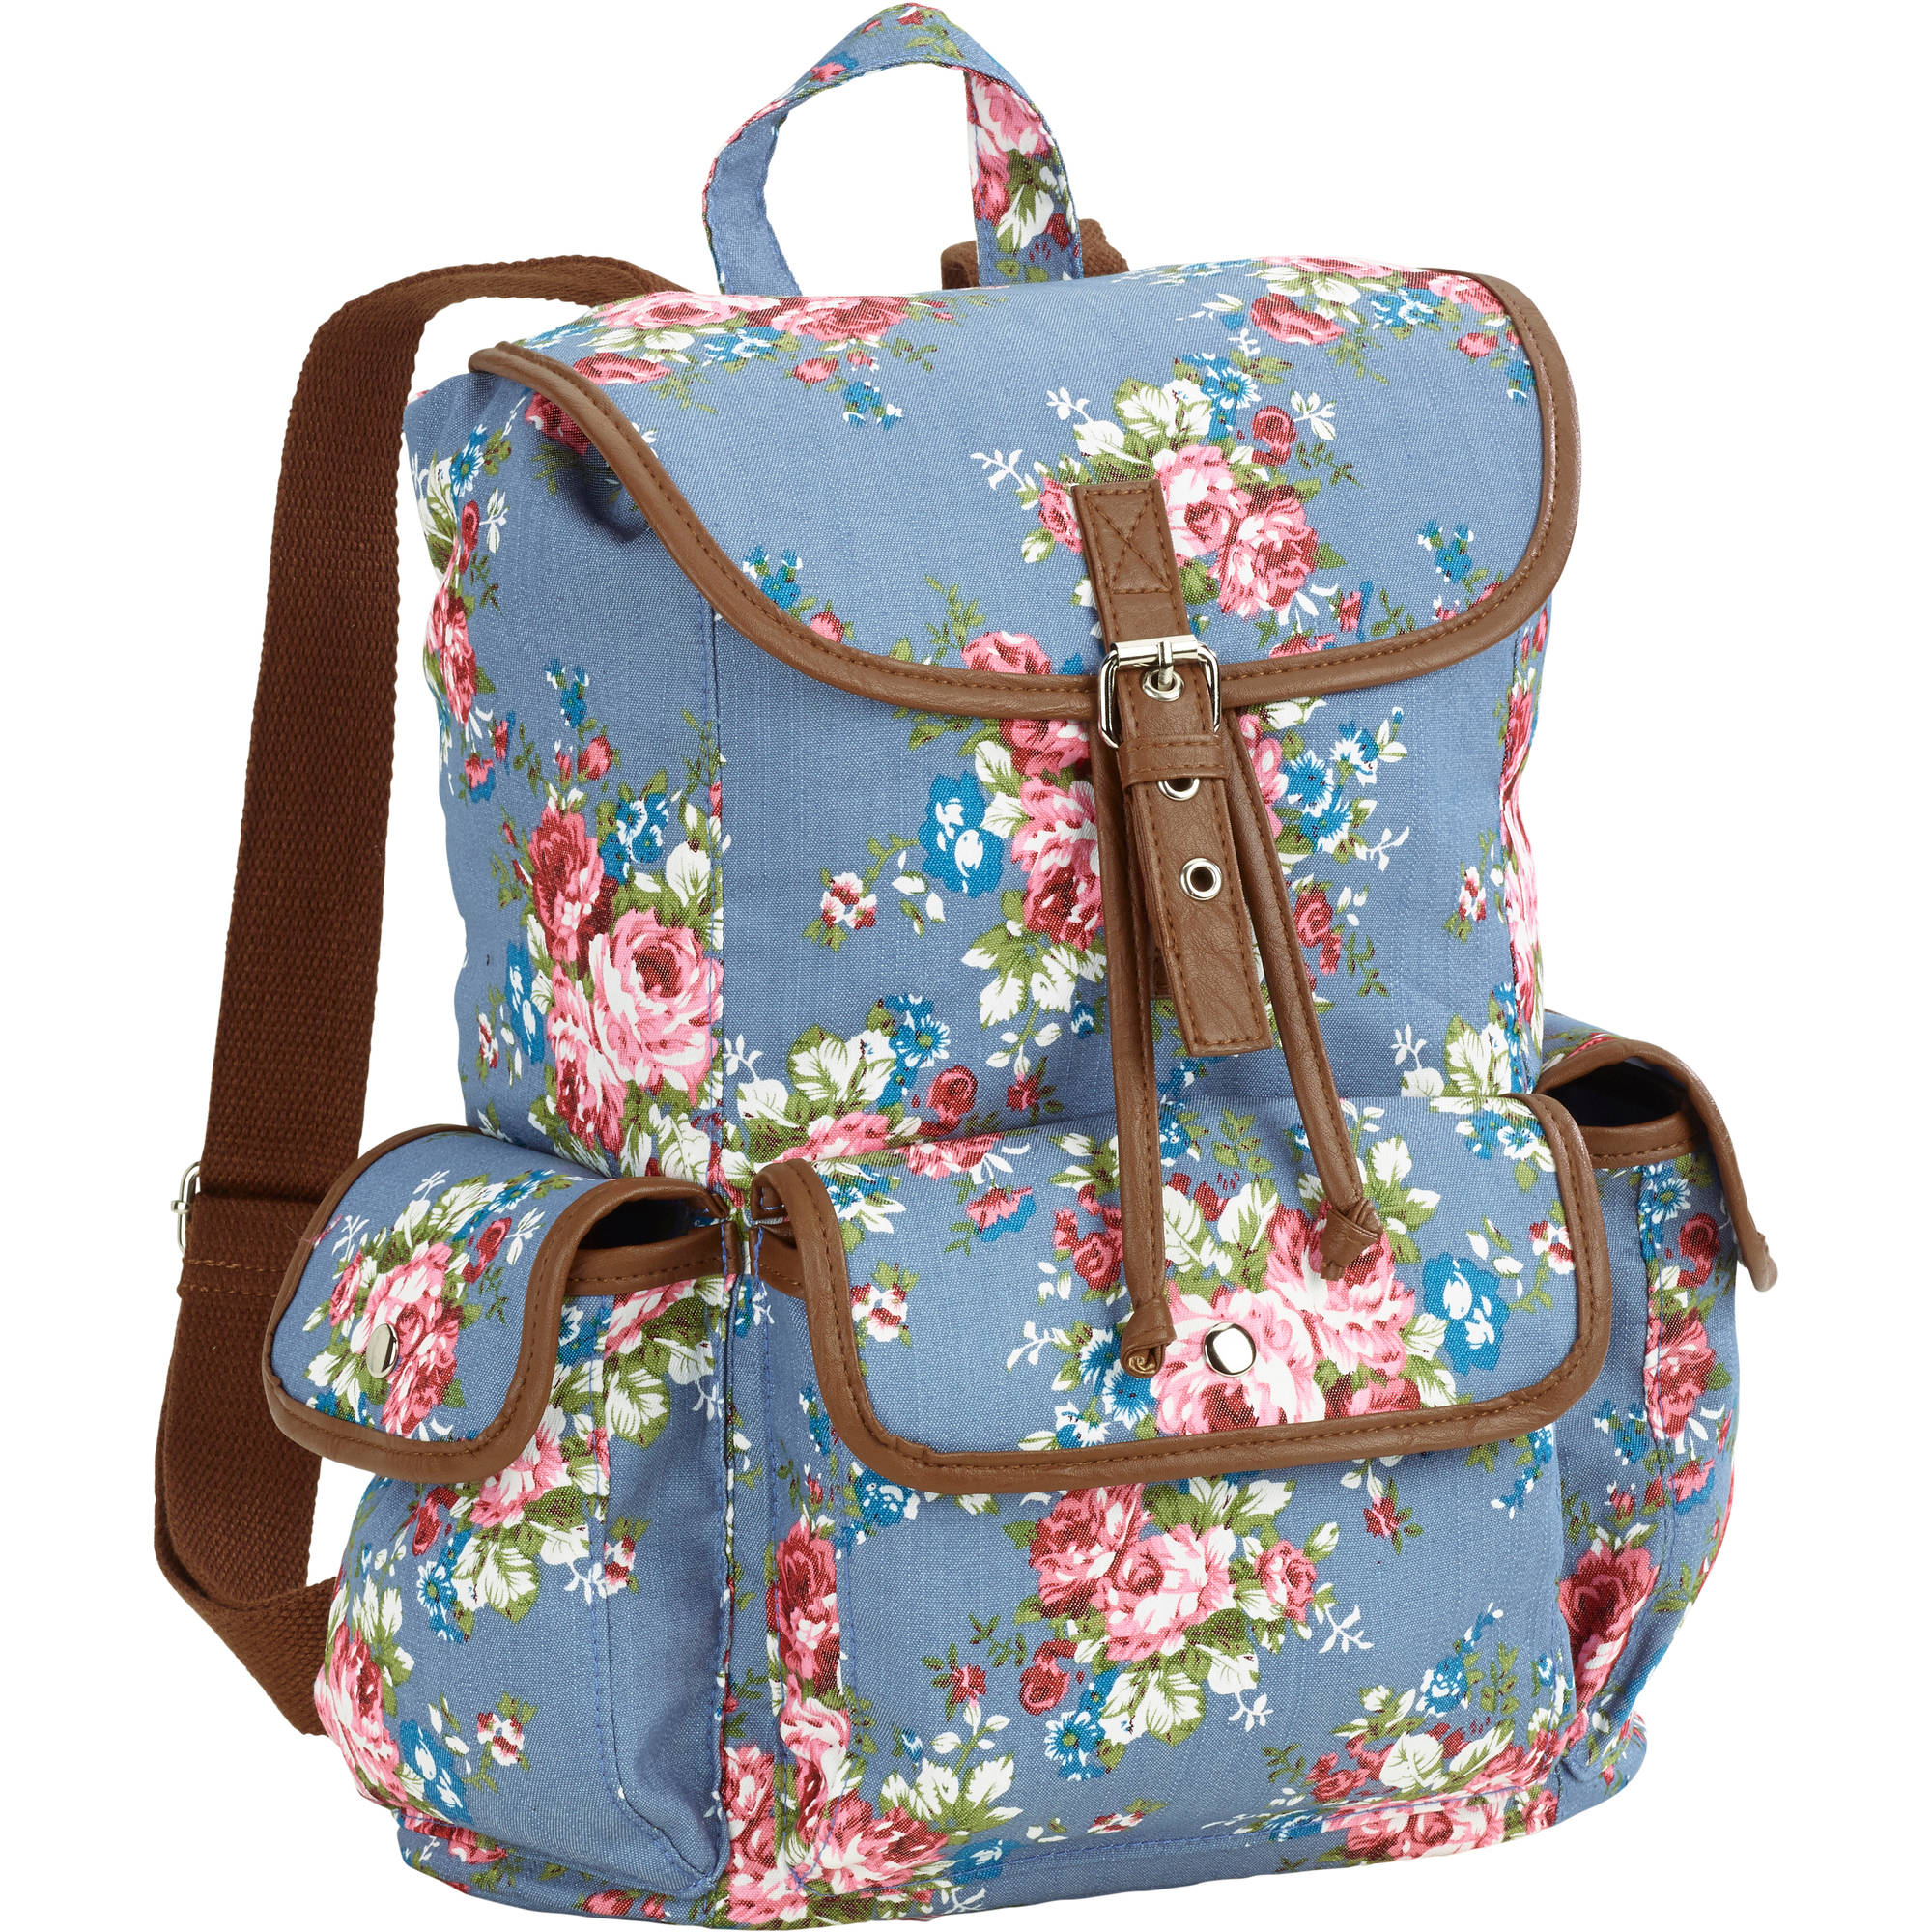 "No Boundaries 18"" Printed Canvas Buckle Flap Backpack - Walmart.com"